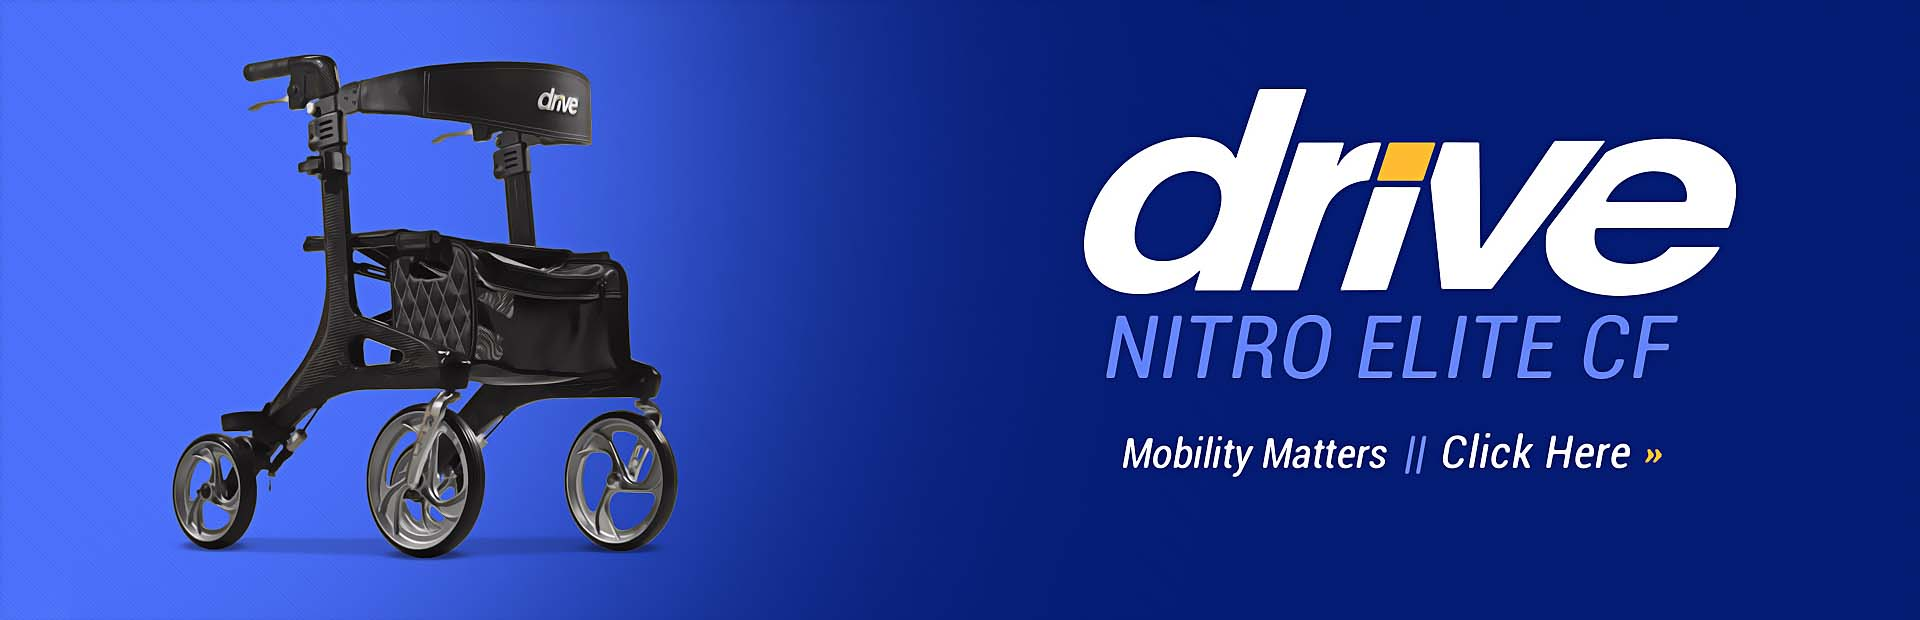 Drive Nitro Elite CF: Click here to view the model.